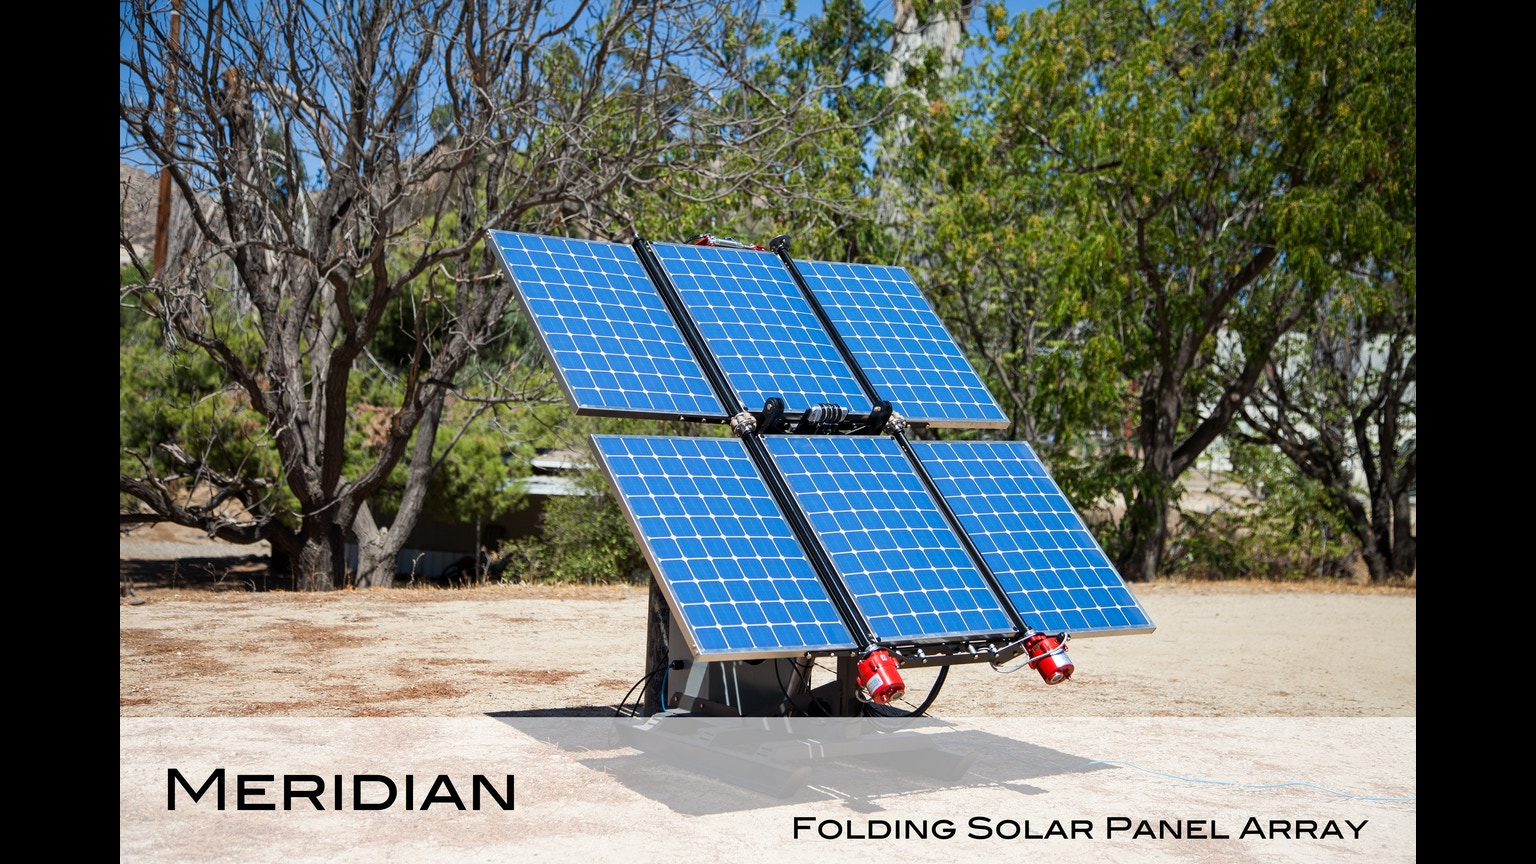 Meridian Folding Solar Panel System Power System By Esmo